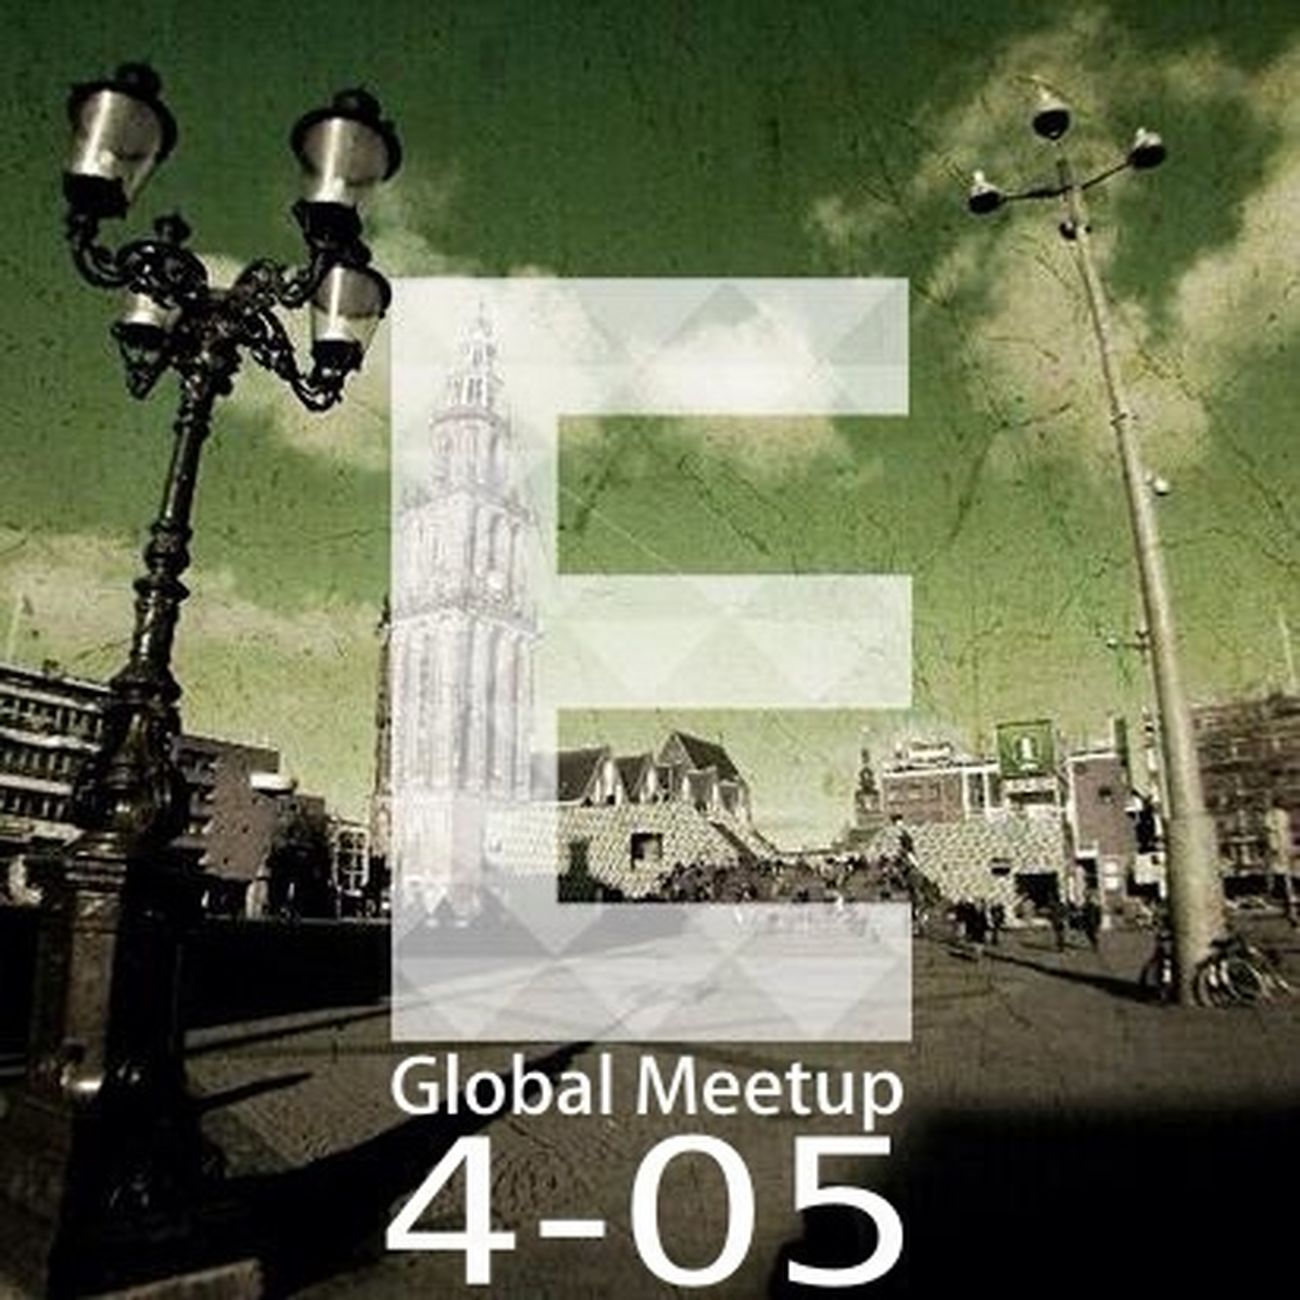 You all are invited to the Global EyeEm Meetup Groningen on Sunday4 may 2014. At 12:30 we come together at Gallery Licht-Zone. More info at FB search for EyeEm Nederland and join the Group.